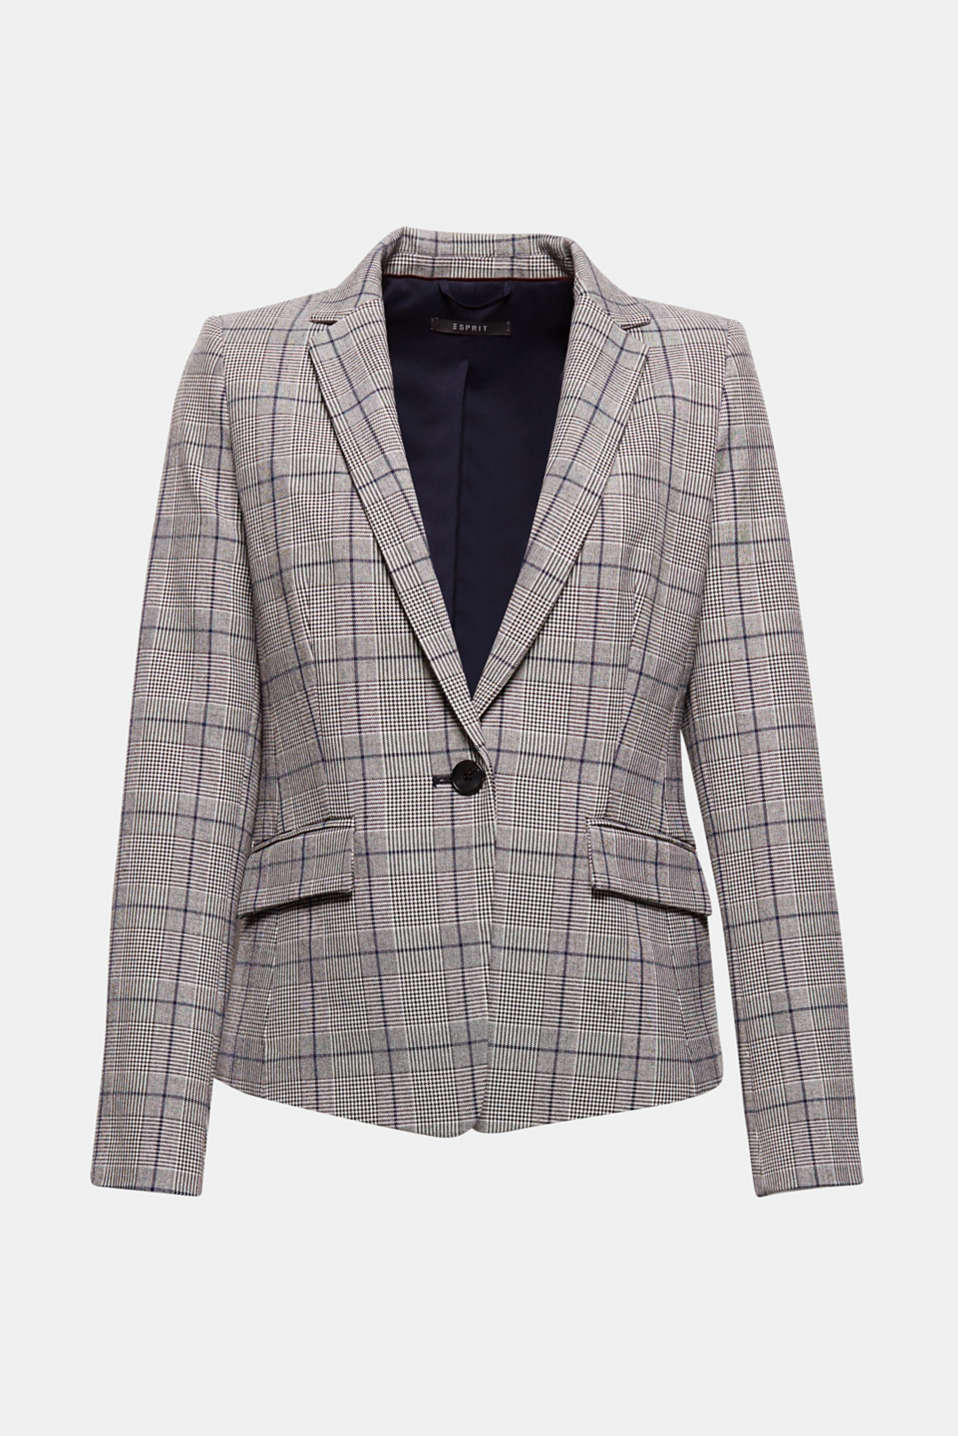 Can be worn with the matching trousers or on its own: the trendy Prince of Wales check and subtle striped details give this blazer its high fashion look.